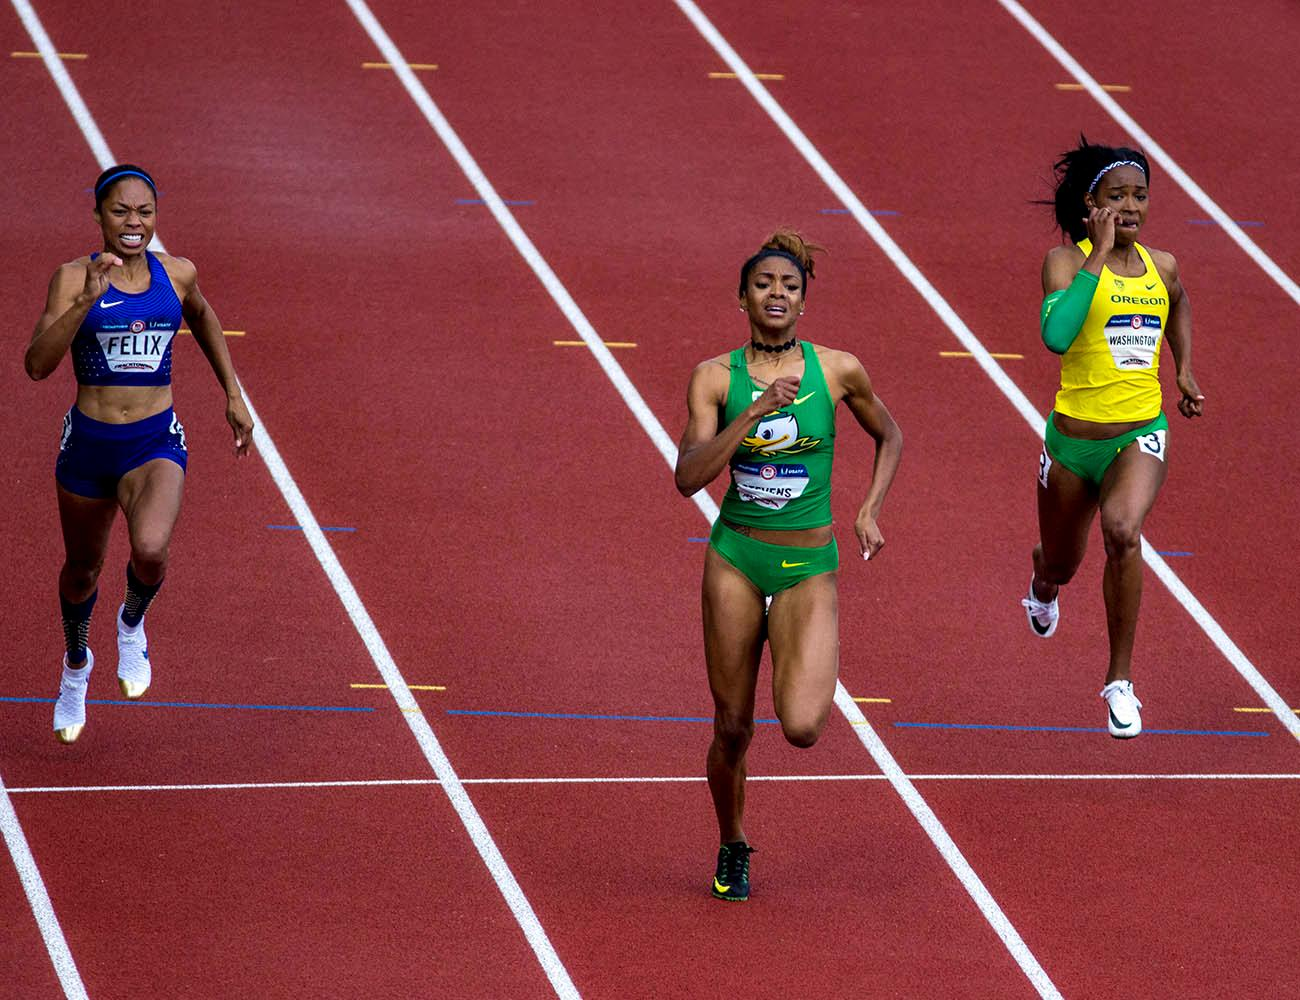 From left to right, Allyson Felix, Deajah Stevens, and Ariana Washington race to the finish line in the Women�s 200m Dash final. Felix finished fourth with a time of 22.54. Stevens finished second with a time of 22.30 and Washington finished fifth with a time of 22.65. Day 10 of the U.S. Track and Field Trials concluded Sunday at Hayward Field in Eugene, Ore. The competition lasted July 1 through July 10. Photo by Amanda Butt